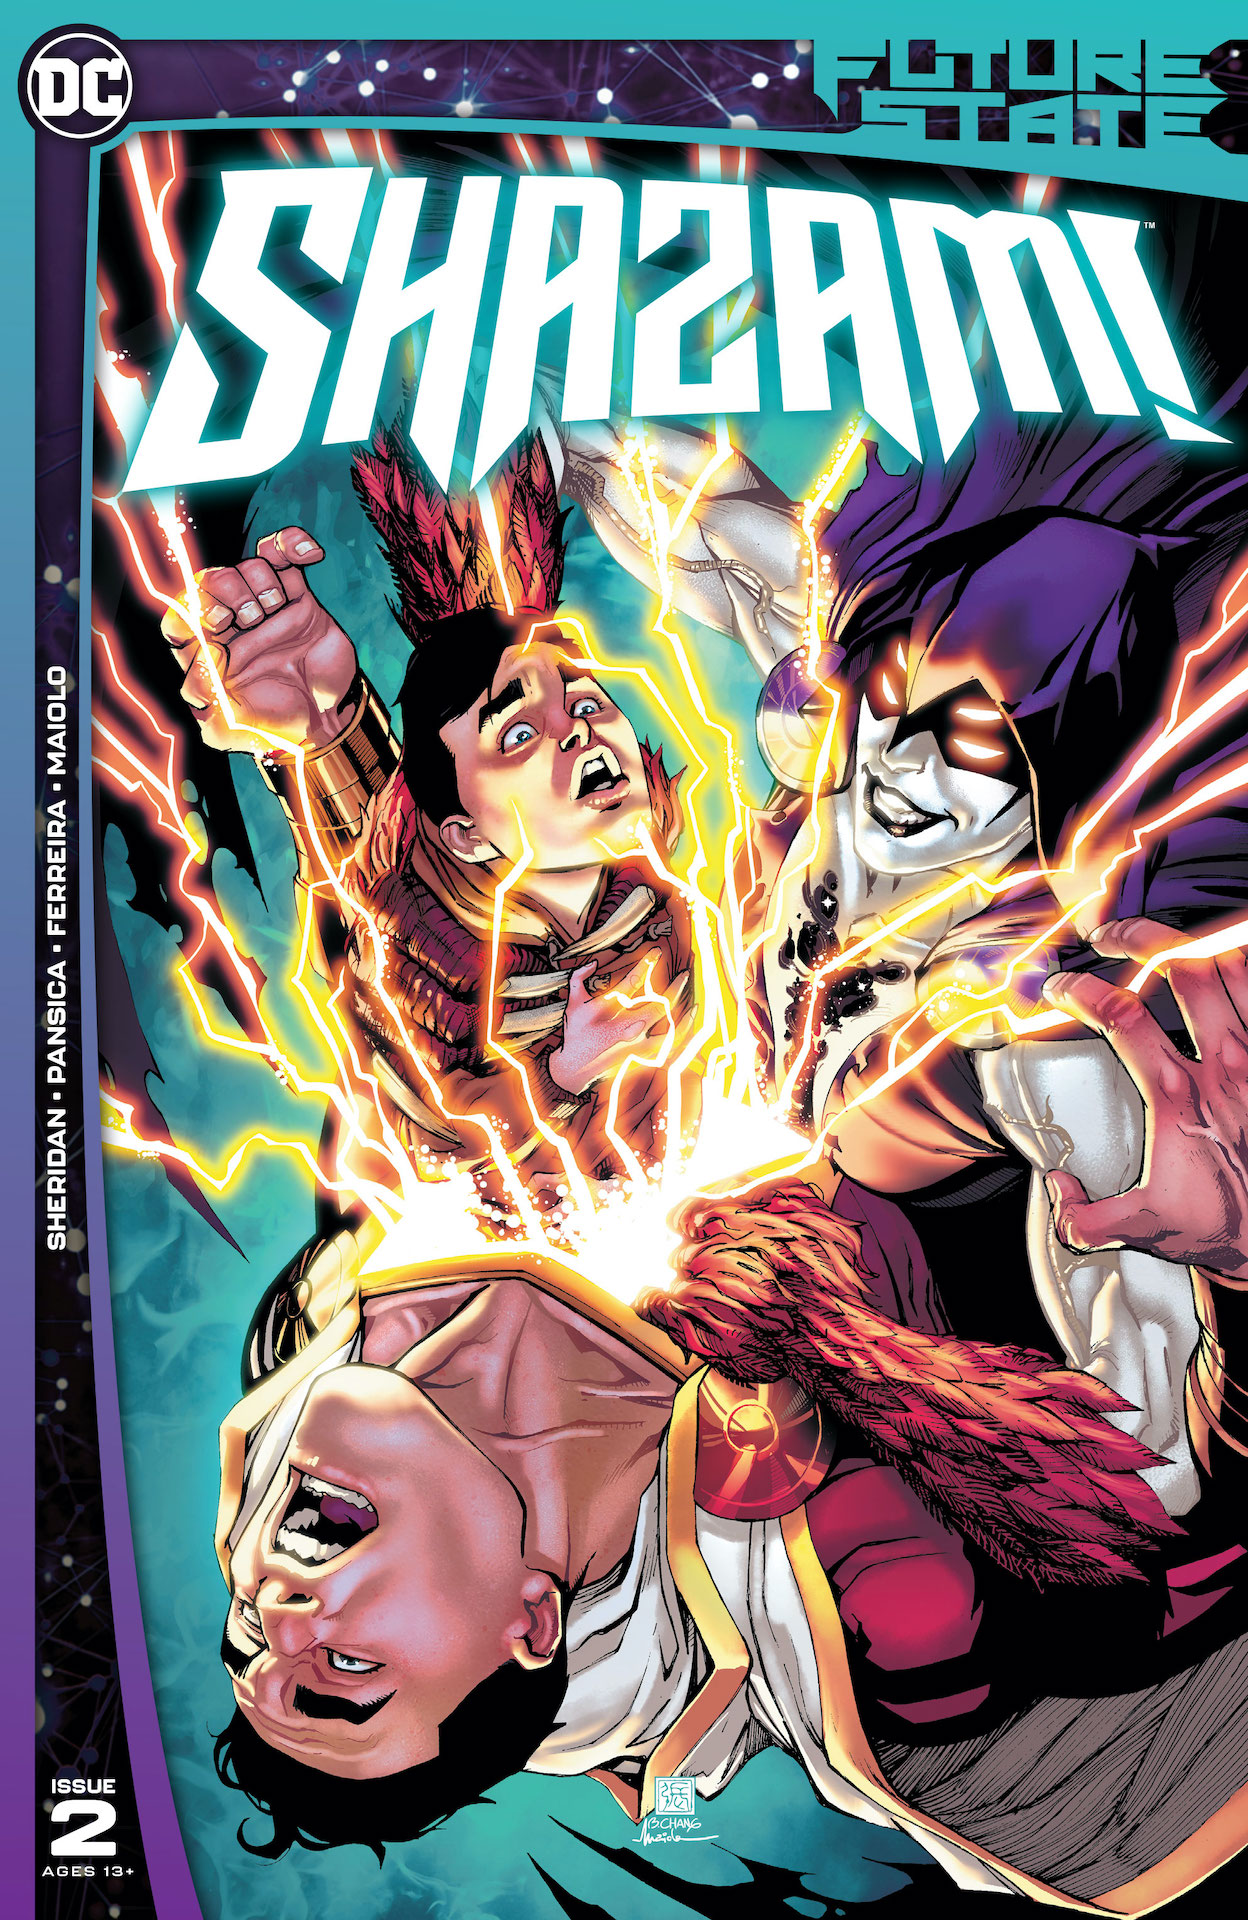 DC Preview: Future State: Shazam! #2